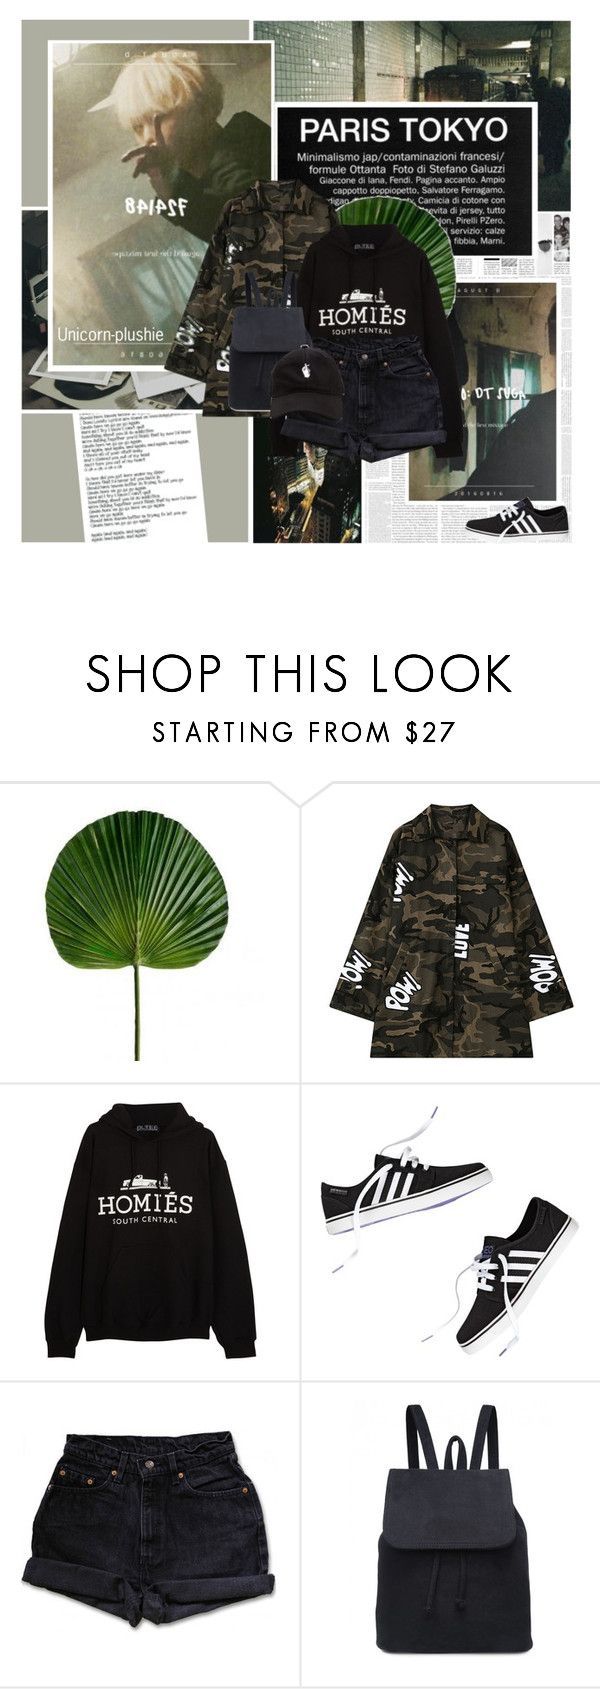 """428: A To The G To The U To The STD"" by unicorn-plushie ❤ liked on Polyvore featuring Again, Polaroid, Chicnova Fashion, Brian Lichtenberg and Levi's"